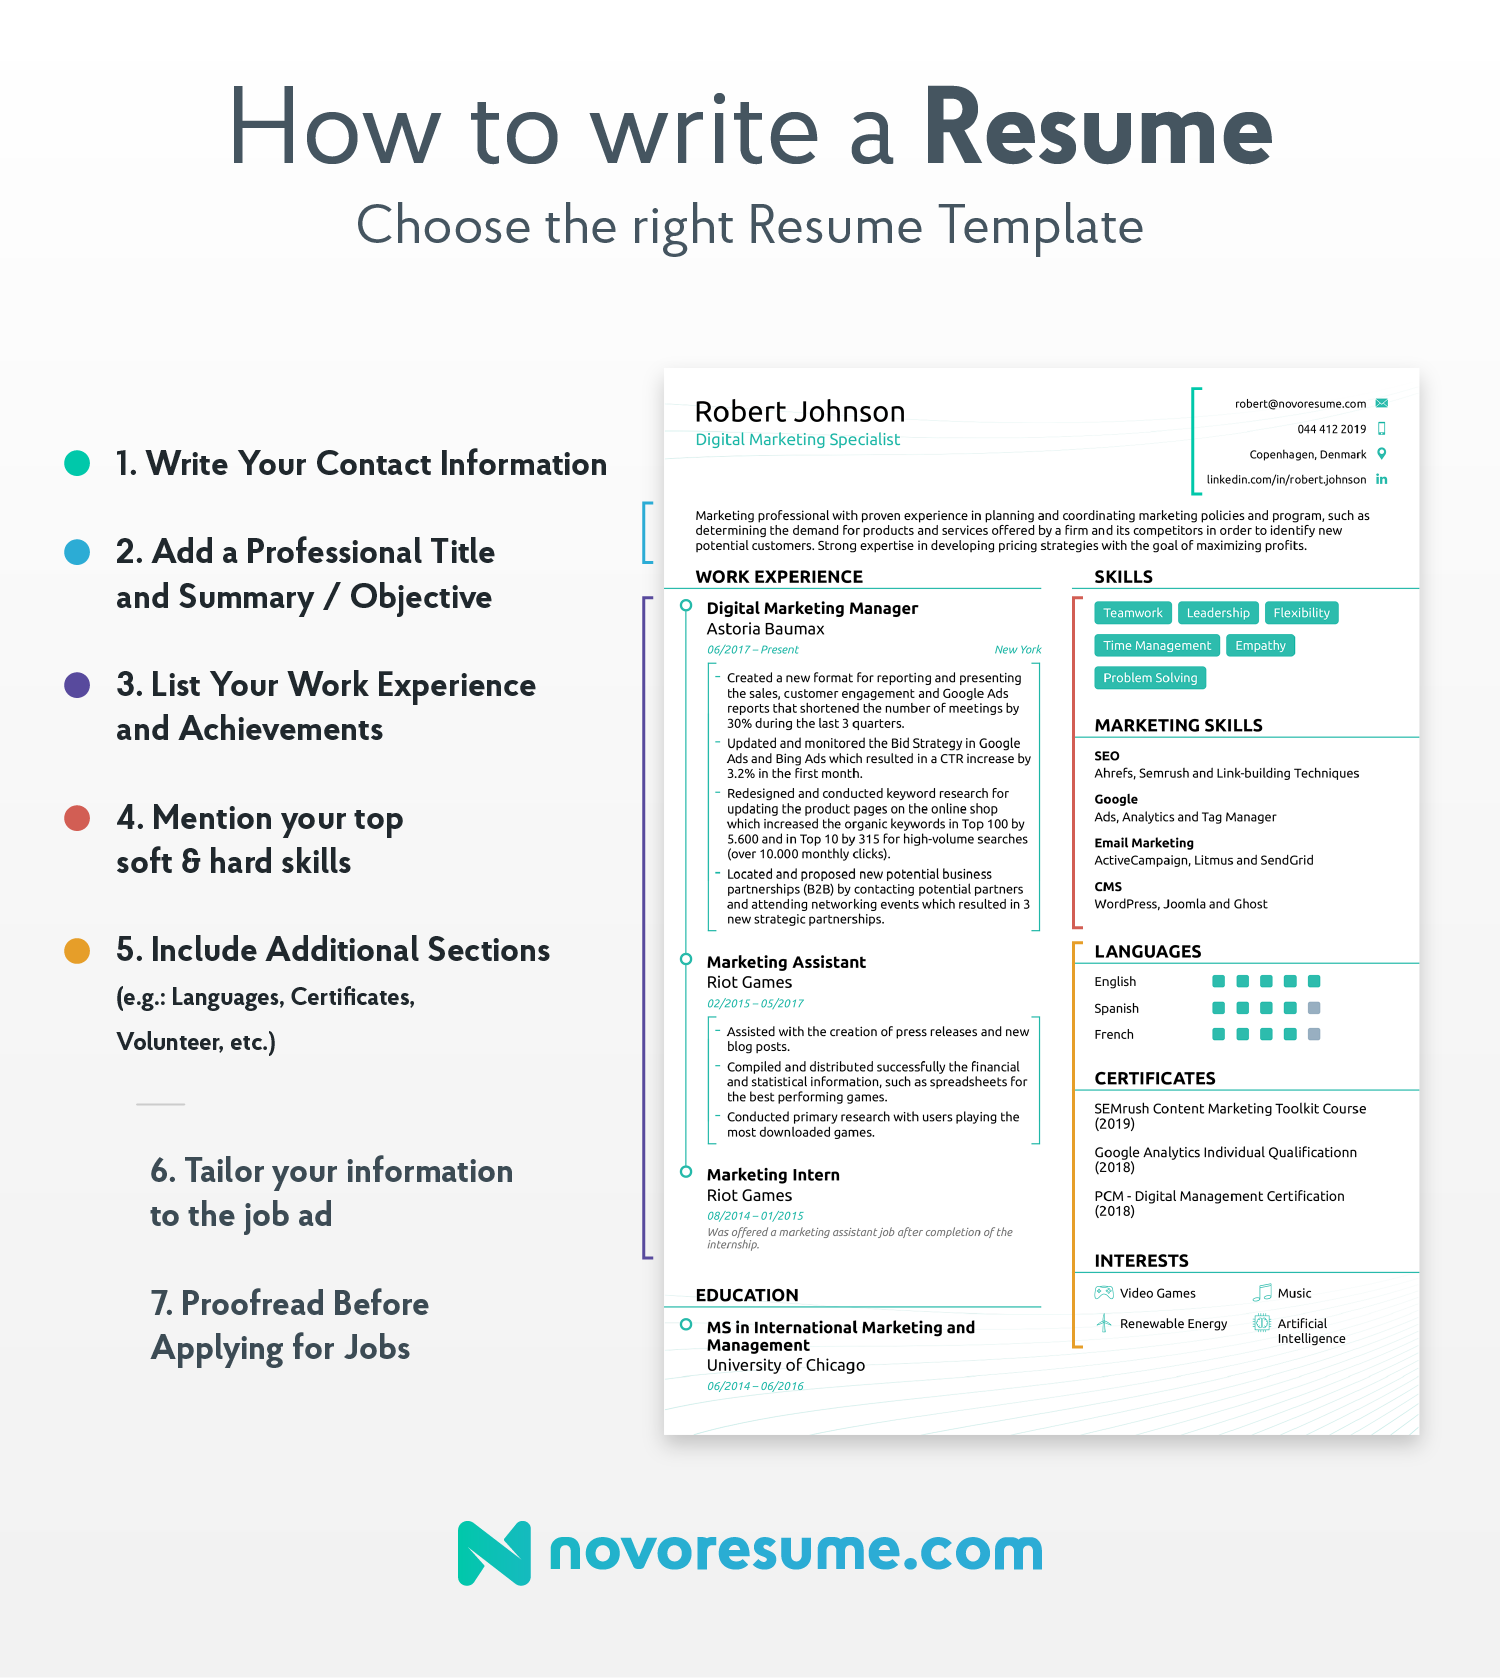 How To Write A Resume 2020 Beginner S Guide Novoresume